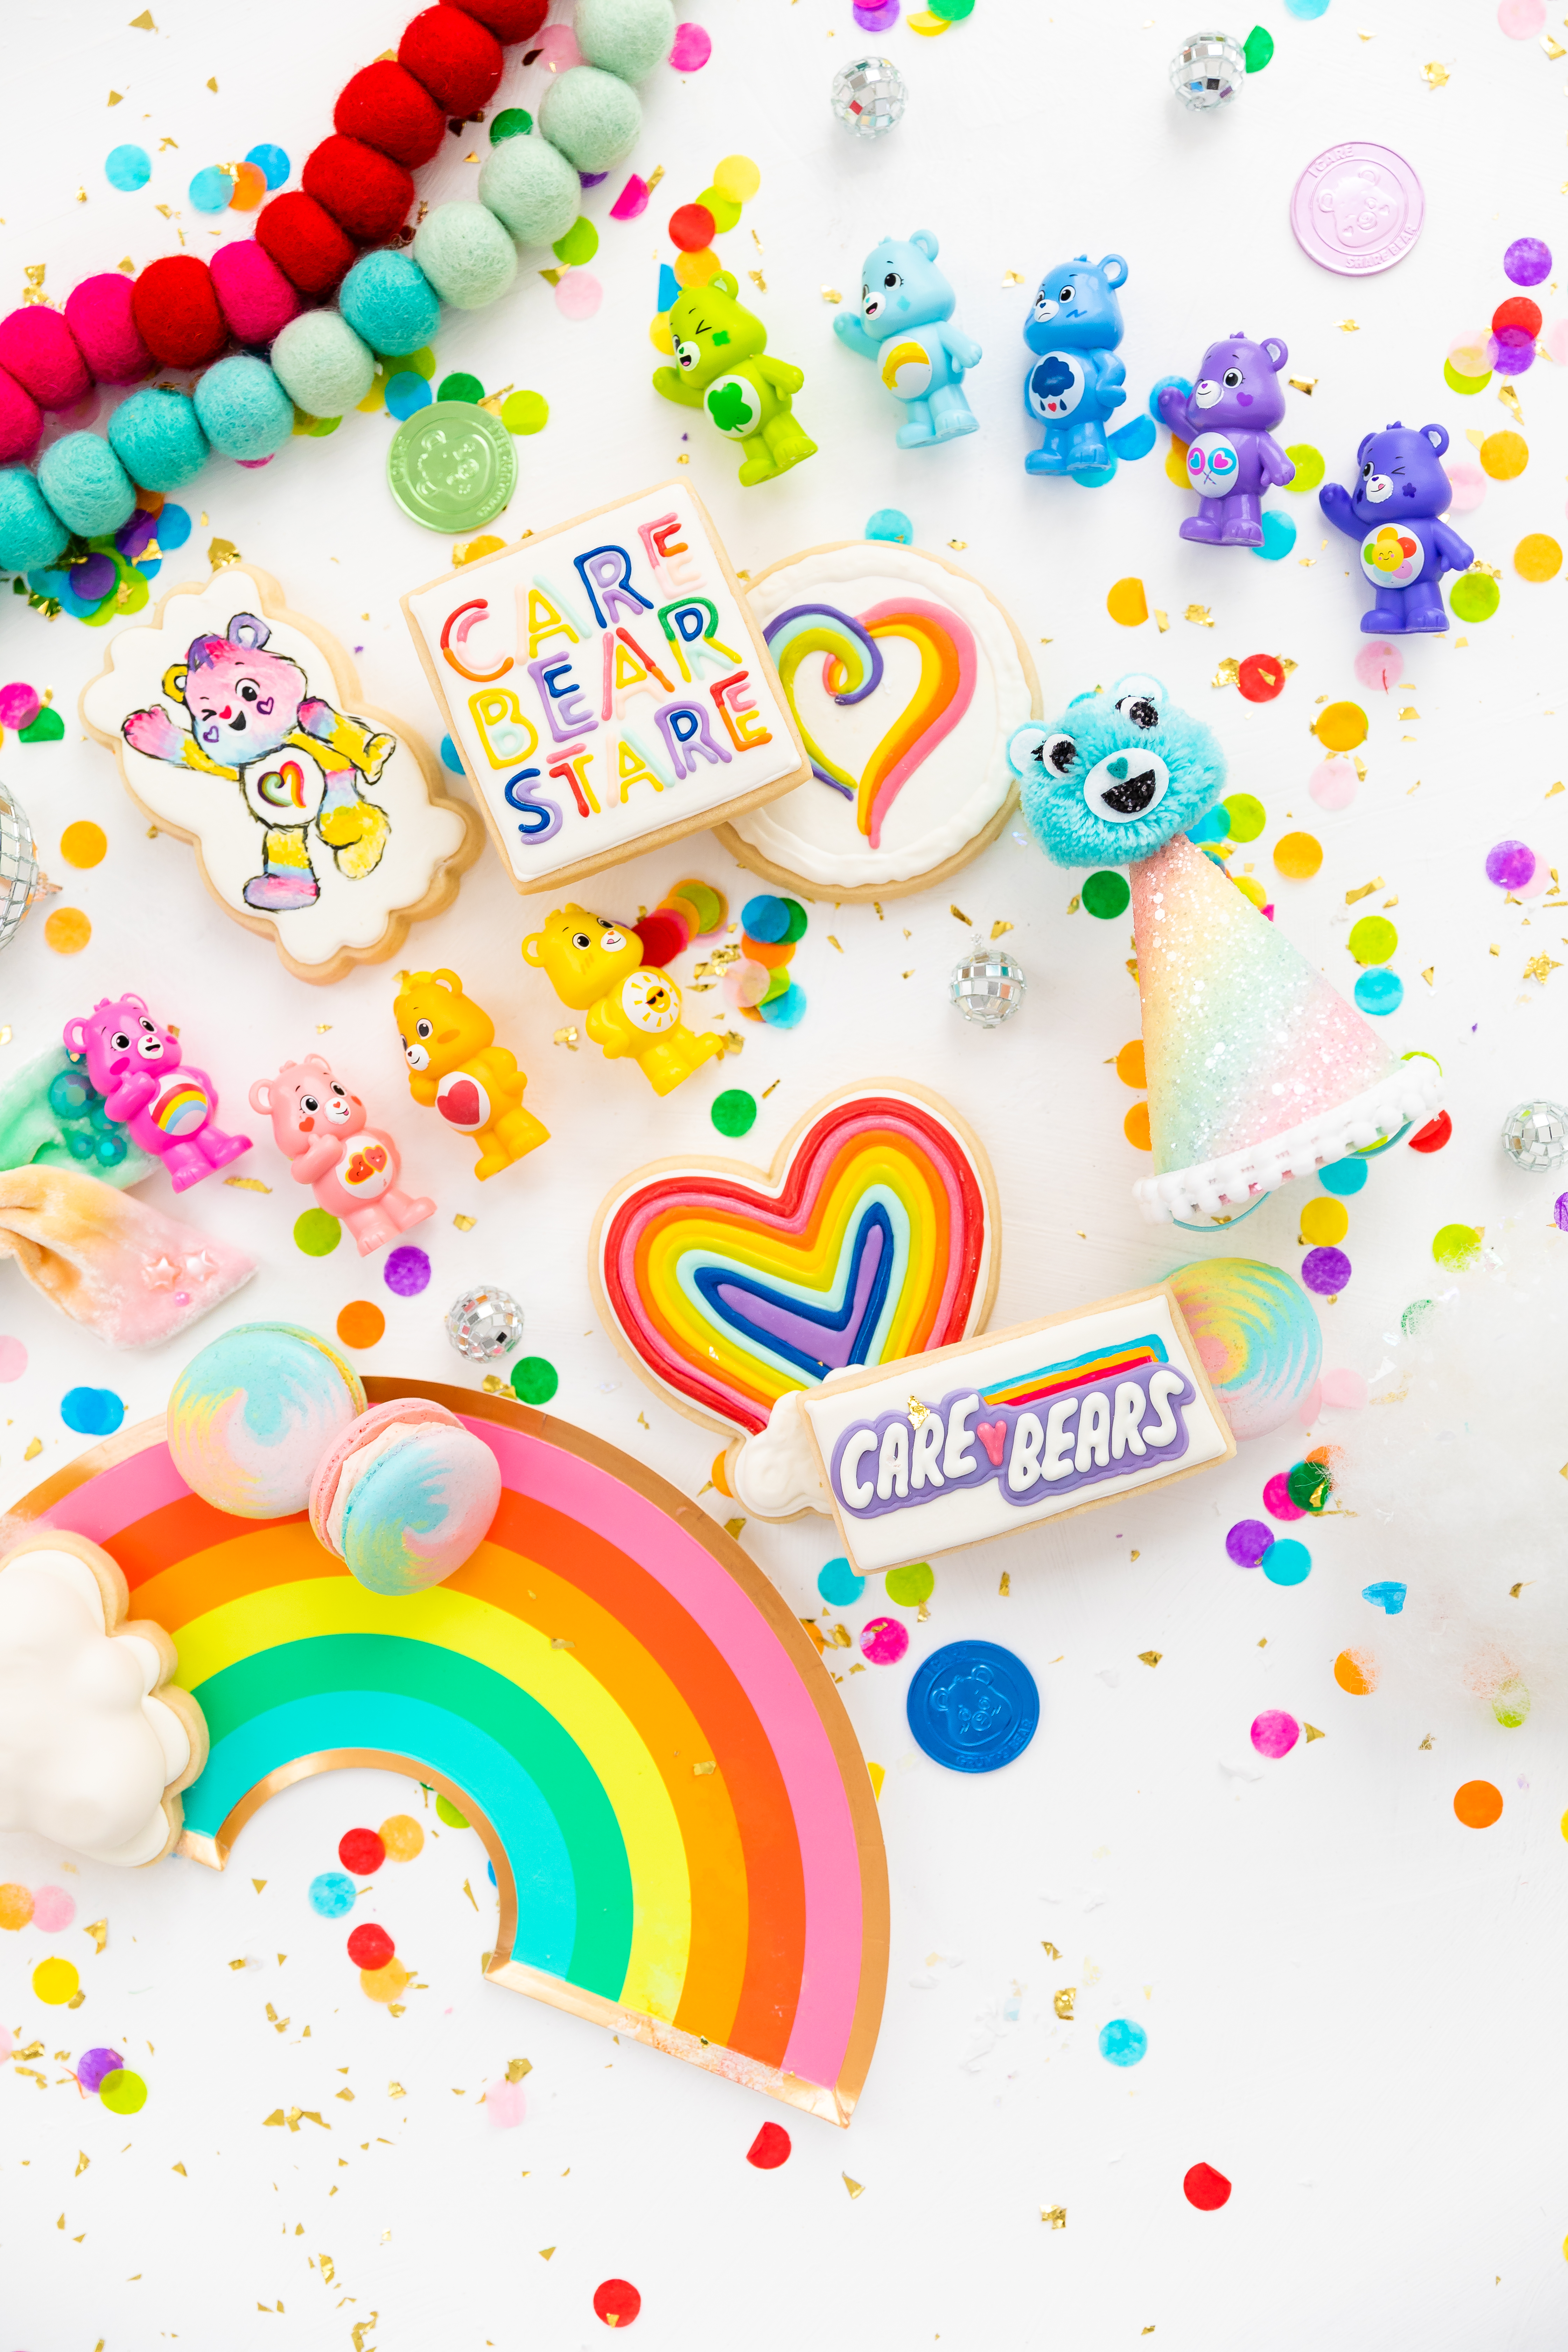 House_of_Fete_Care_Bears-1